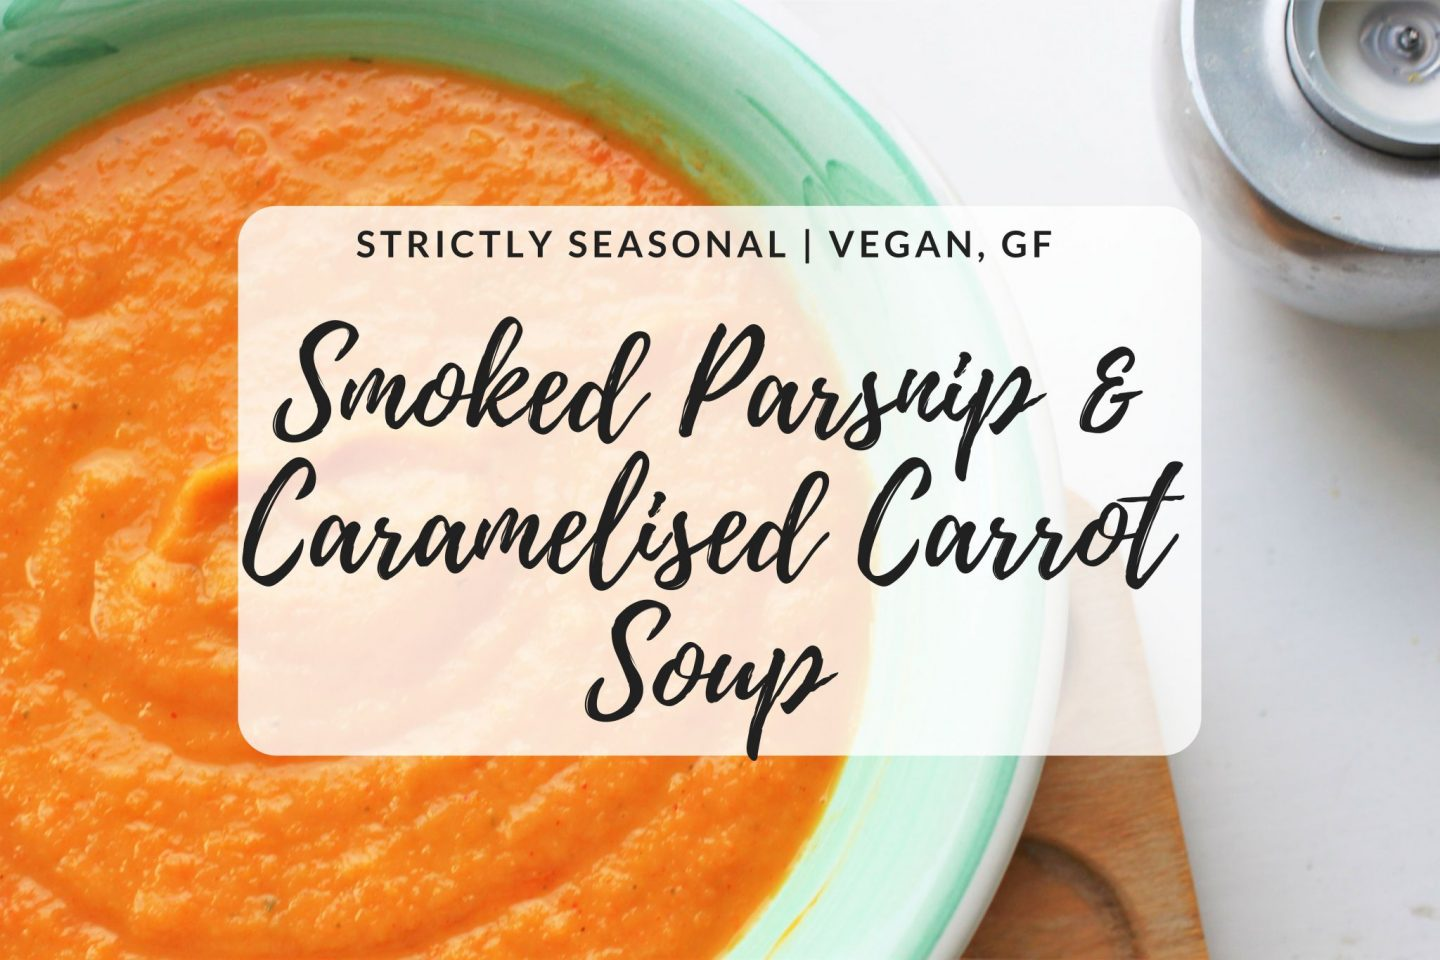 Smoked Parsnip & Caramelised Carrot Soup | Strictly Seasonal